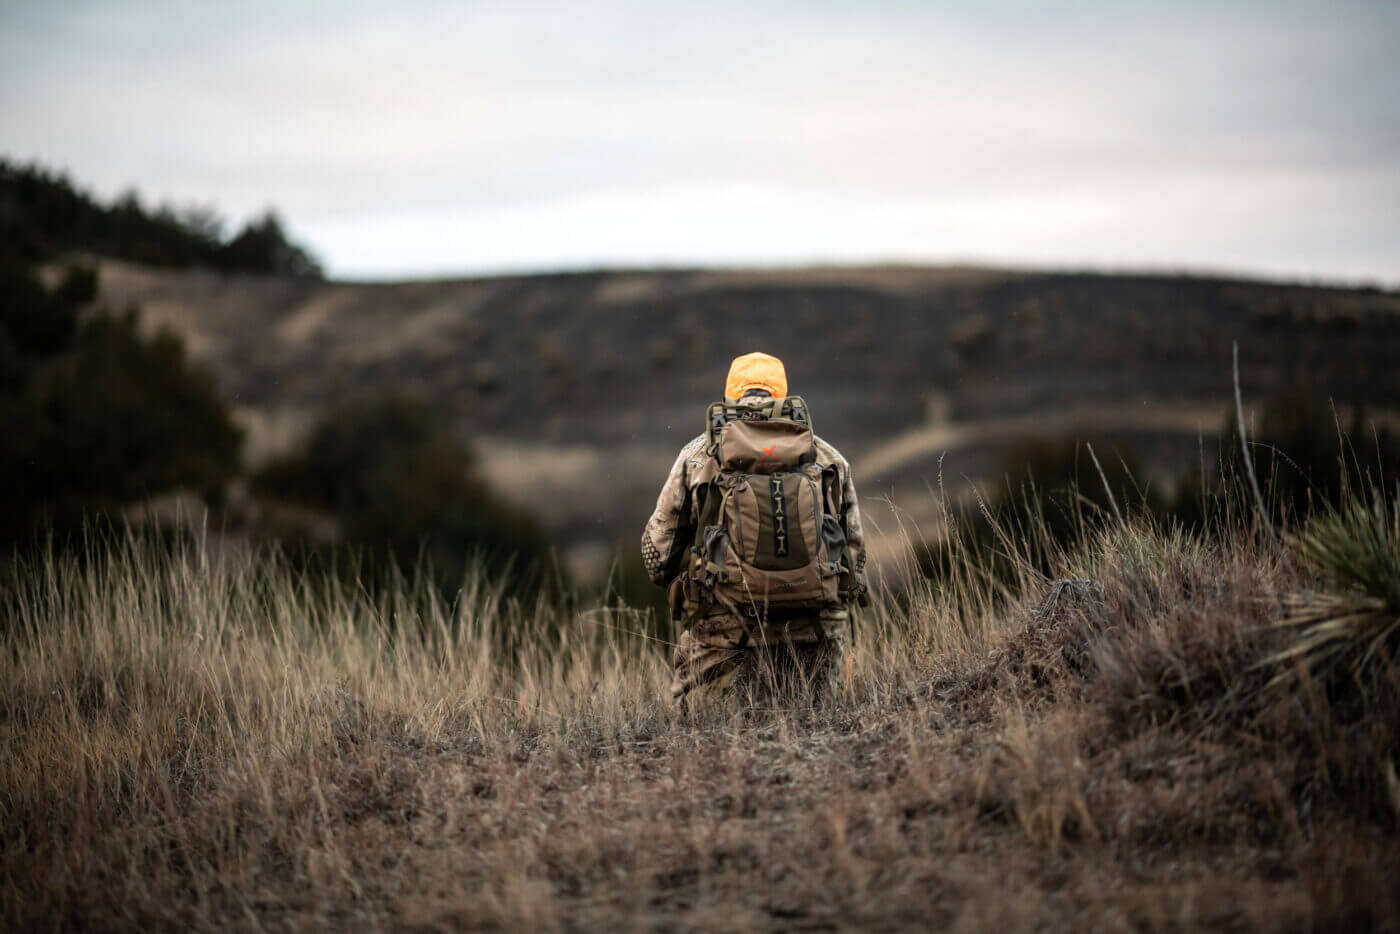 Hunting with the ALPS OutdoorZ Hybrid X backpack